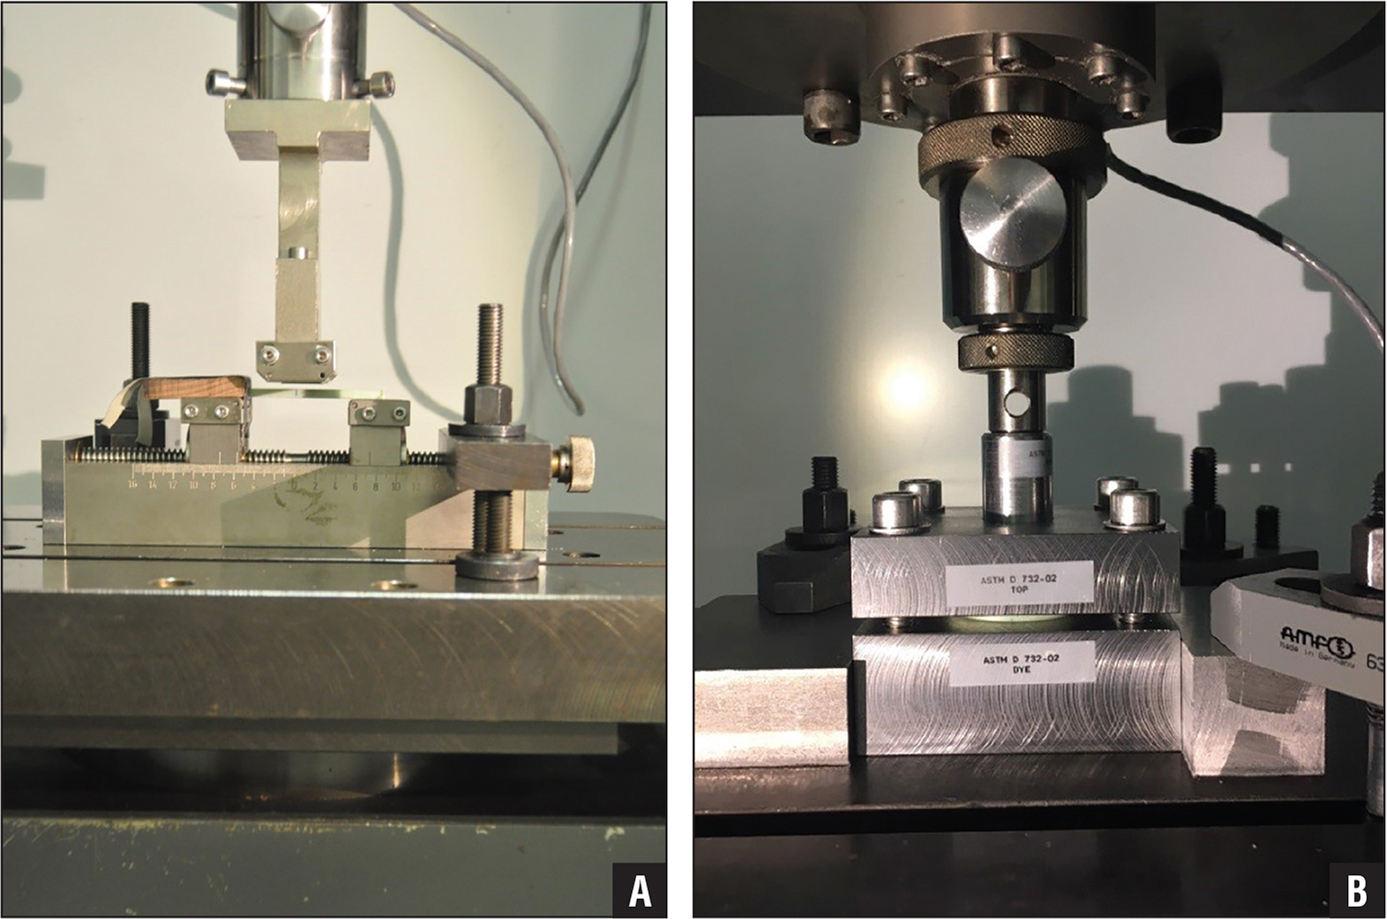 Four-point bending test setup to test bending strength and modulus of the cement–cement interface (A). Shear test setup to test shear strength of the cement–cement interface (B). Both tests were performed with a Universal material testing machine (Zwick 1456; Zwick GmbH).